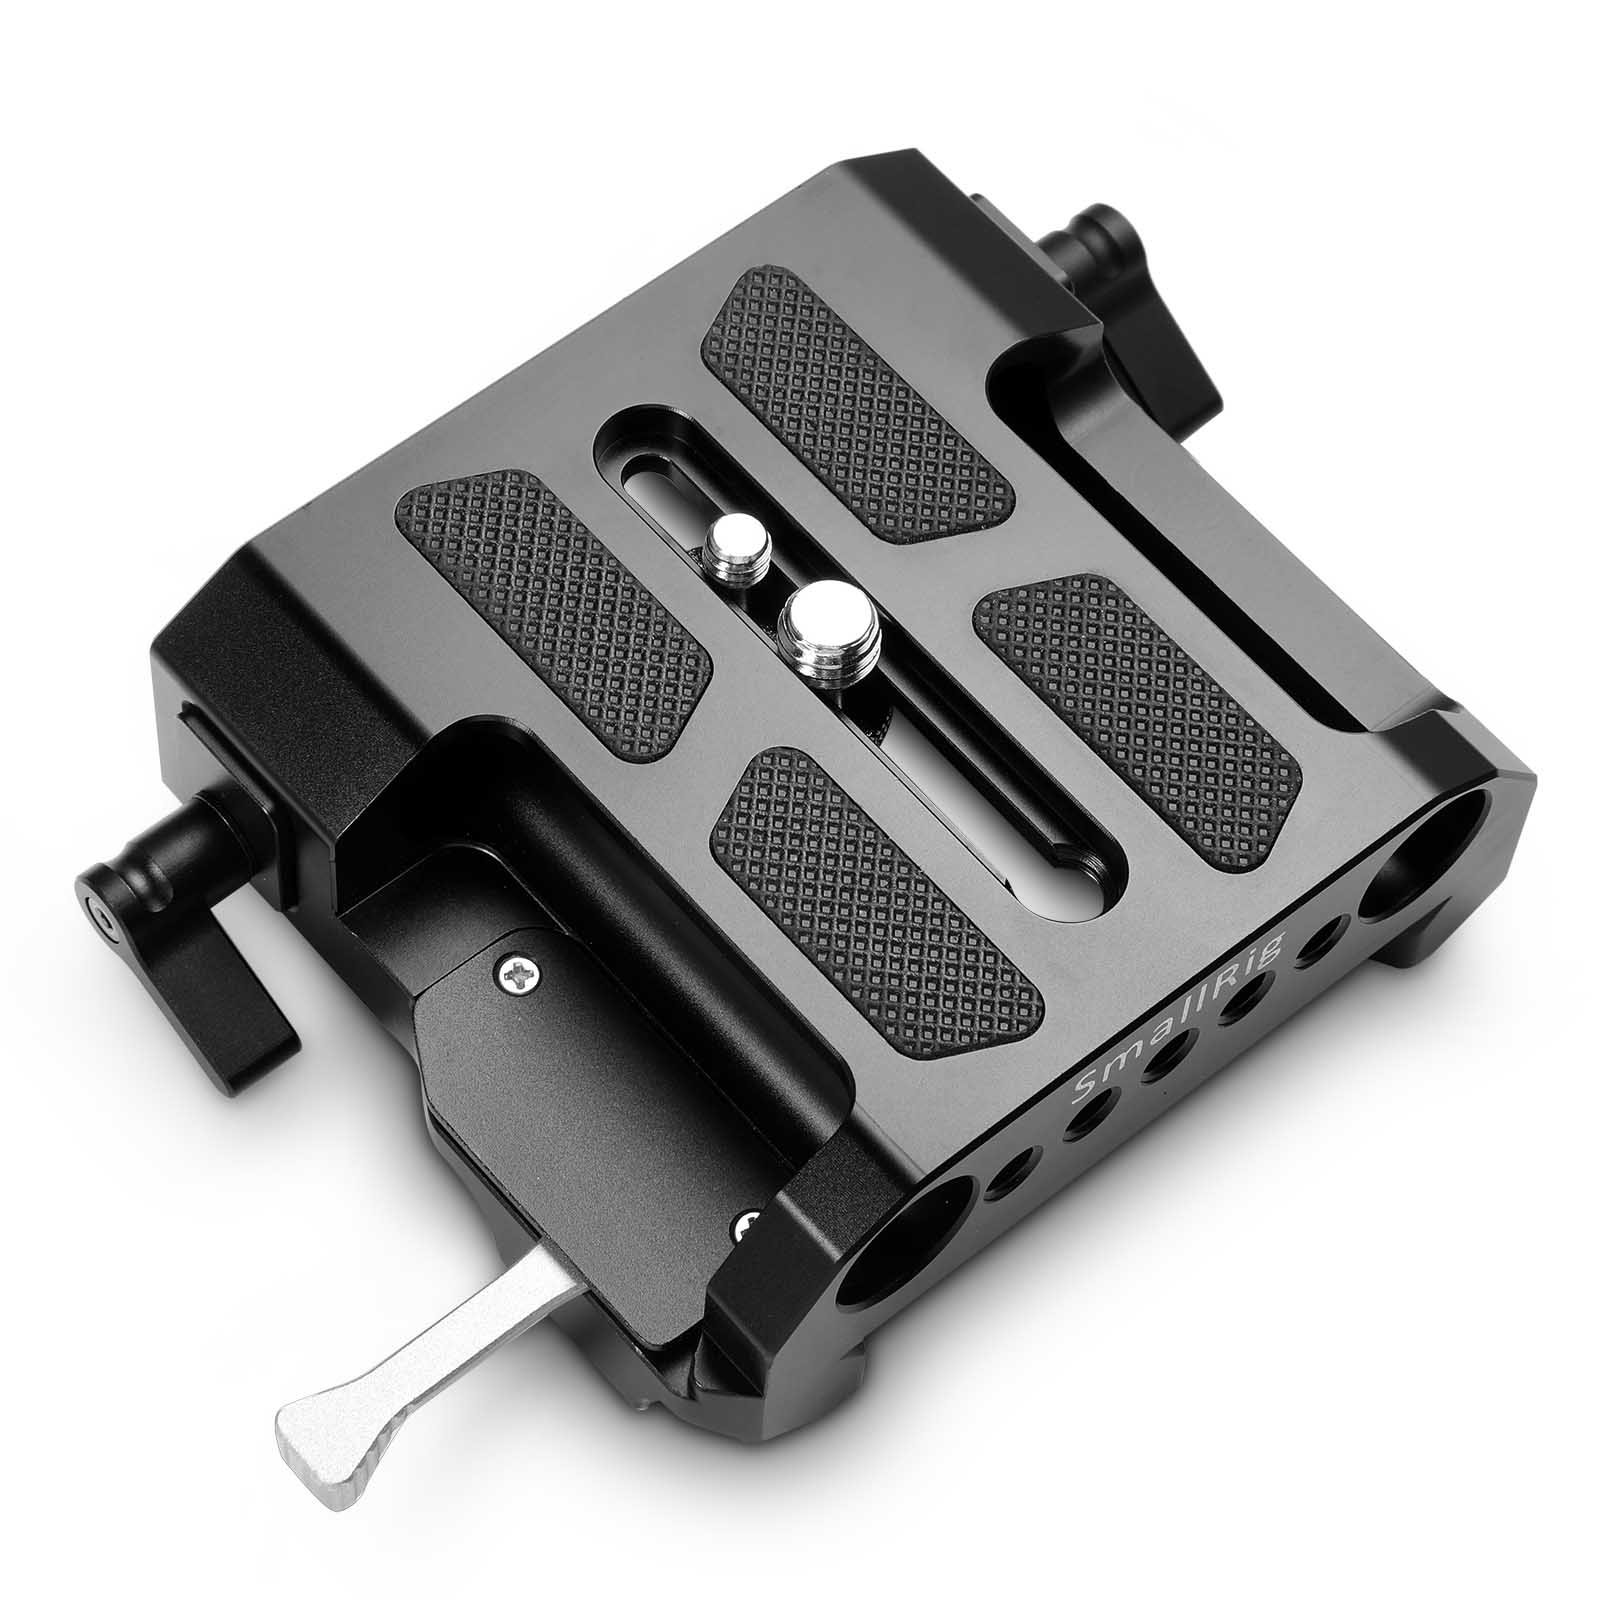 SMALLRIG Explorer Bridgeplate for Arri Quick Release Plate with 15mm LWS Clamps - 1642 by SmallRig